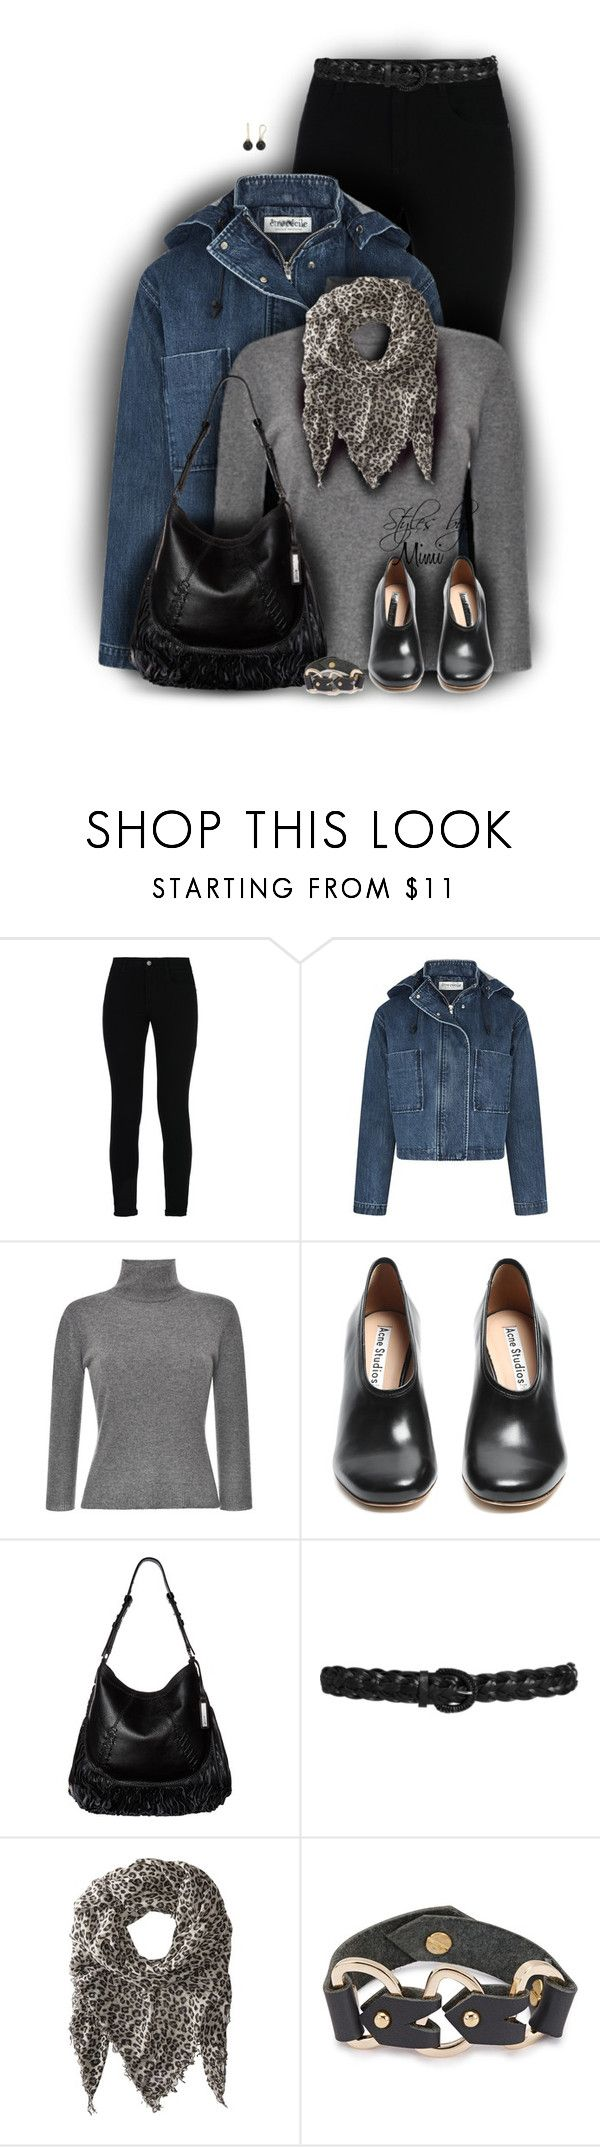 """""""Casual Cashmere (1.10.17)"""" by stylesbymimi ❤ liked on Polyvore featuring STELLA McCARTNEY, Être Cécile, Blumarine, Acne Studios, Joe's Jeans, Wet Seal, Chan Luu and John & Pearl"""